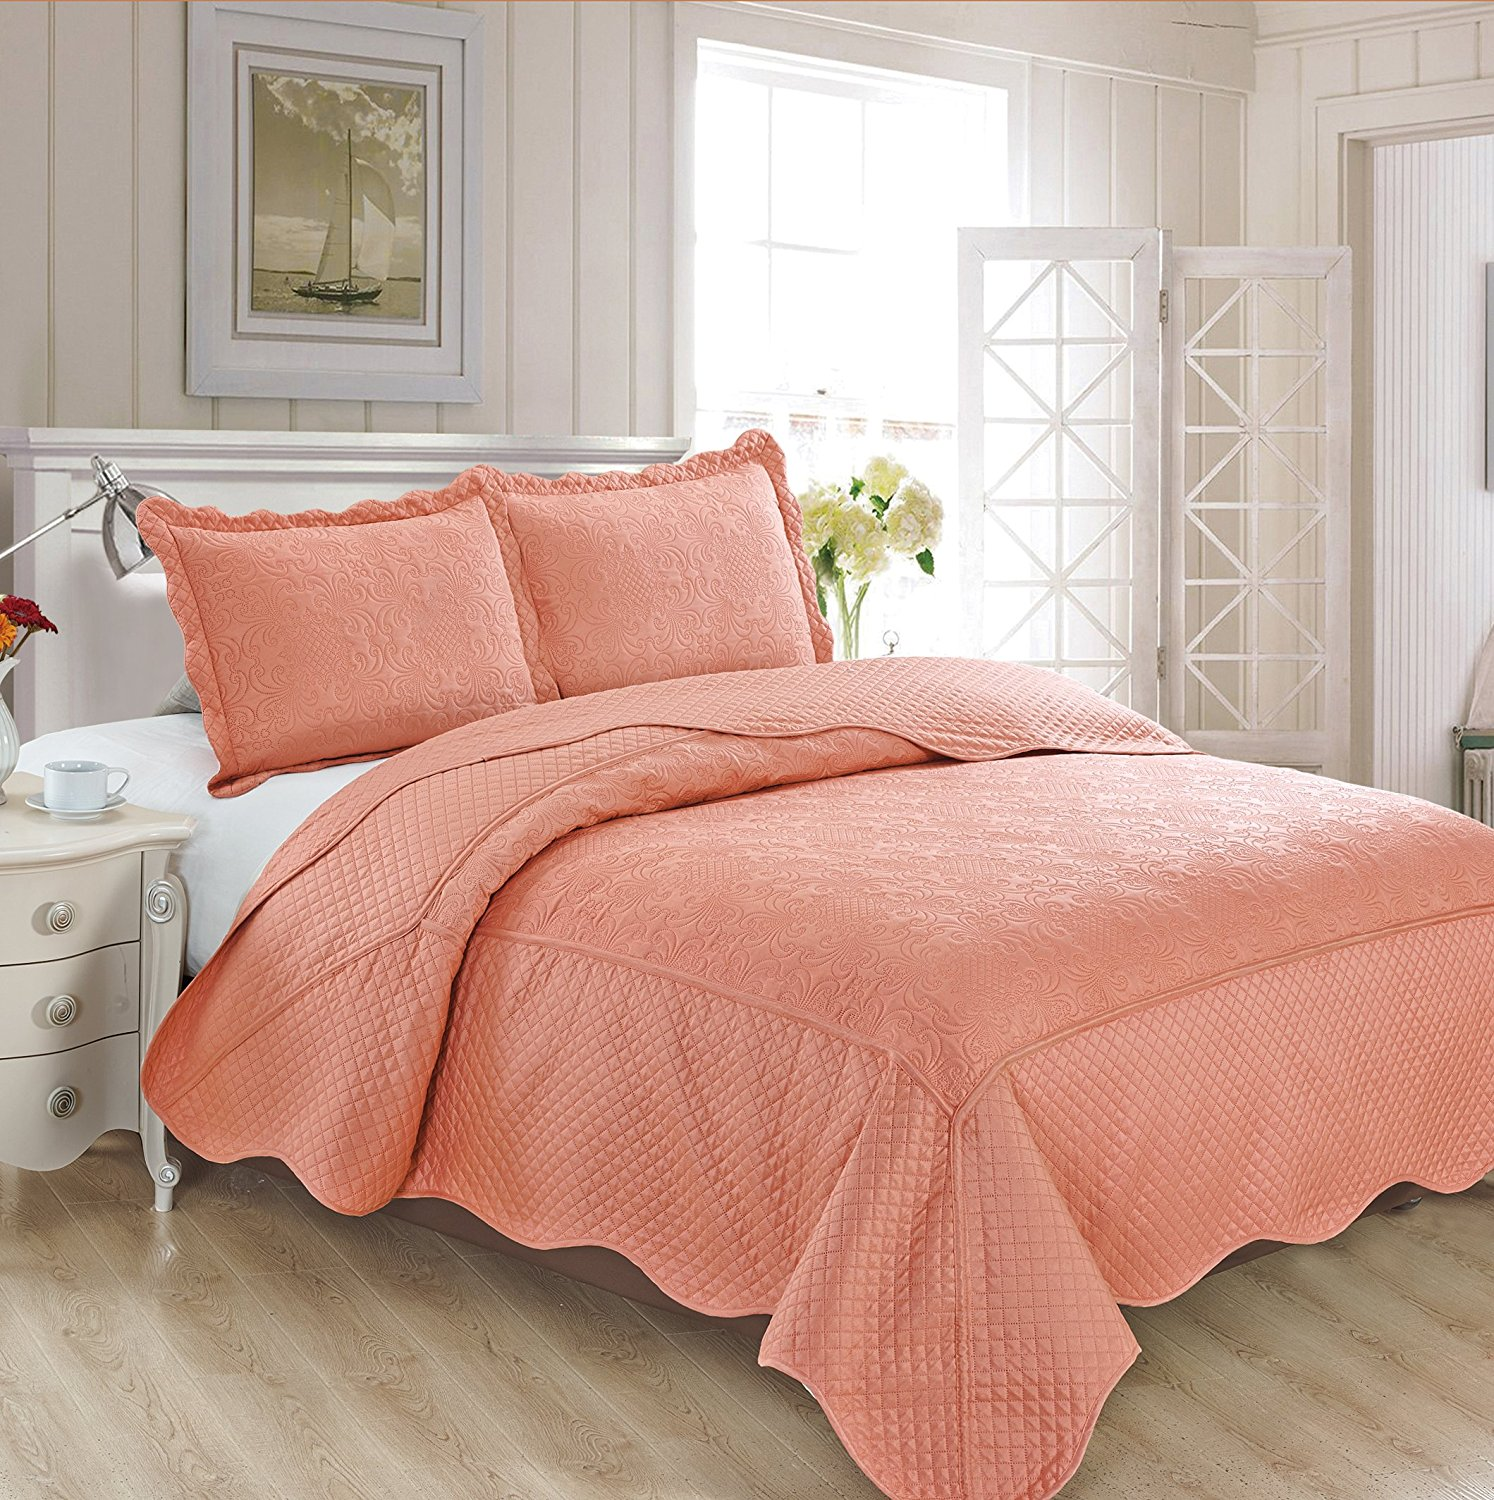 "Fancy Collection 3pc Luxury Bedspread Coverlet Embossed Bed Cover Solid Coral New Over Size Full/Queen 100"" x106"" #Veronica"